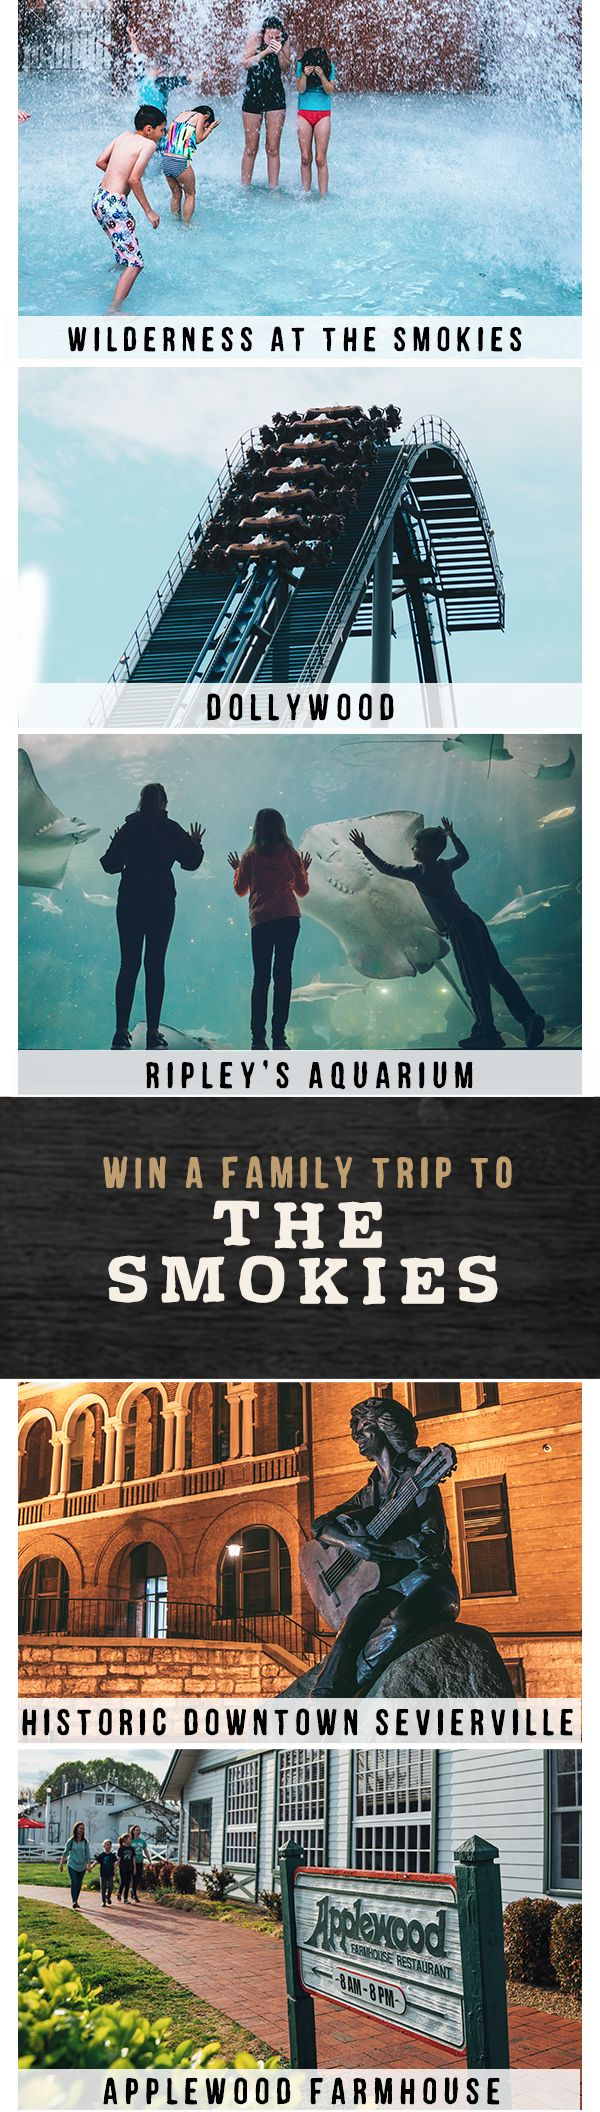 We're giving away a free family trip to the Smokies. Simply match all the same amazing spots in this pin at TNVacation.com, and you'll be entered for a chance to win!